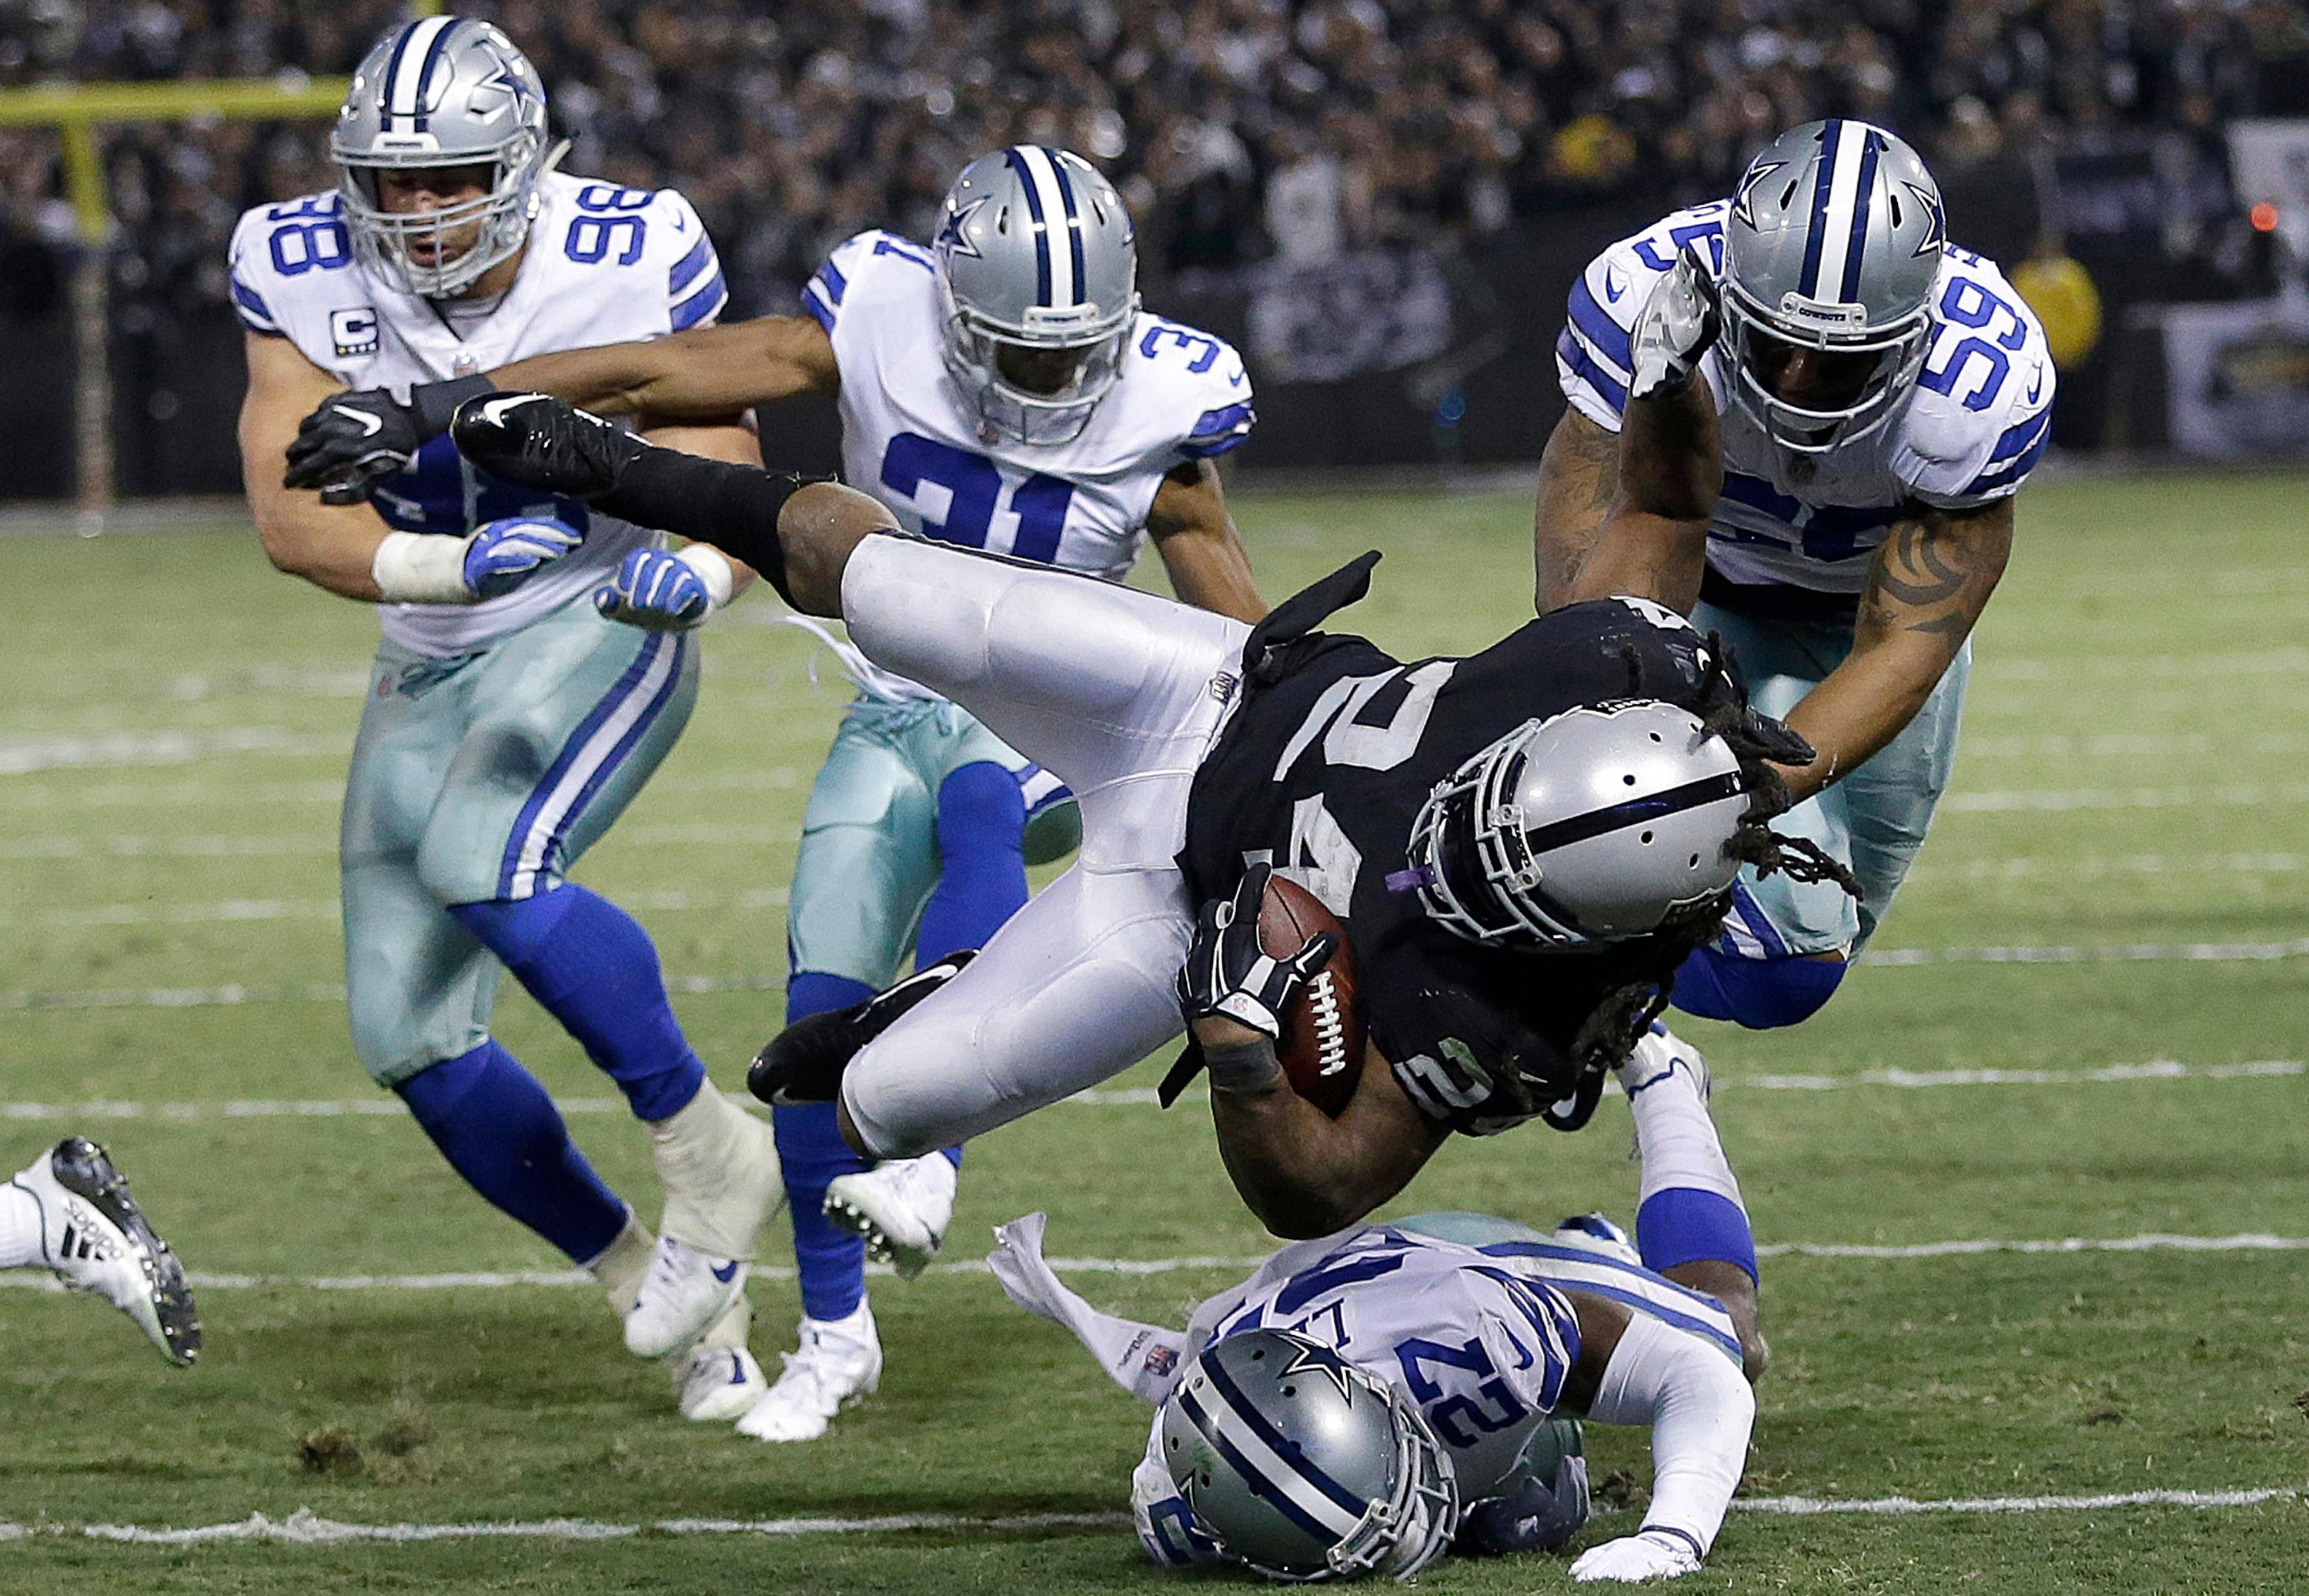 Oakland Raiders running back Marshawn Lynch (24) is tackled by Dallas Cowboys defenders during the second half of an NFL football game in Oakland, Calif., Sunday, Dec. 17, 2017. (AP Photo/Ben Margot)